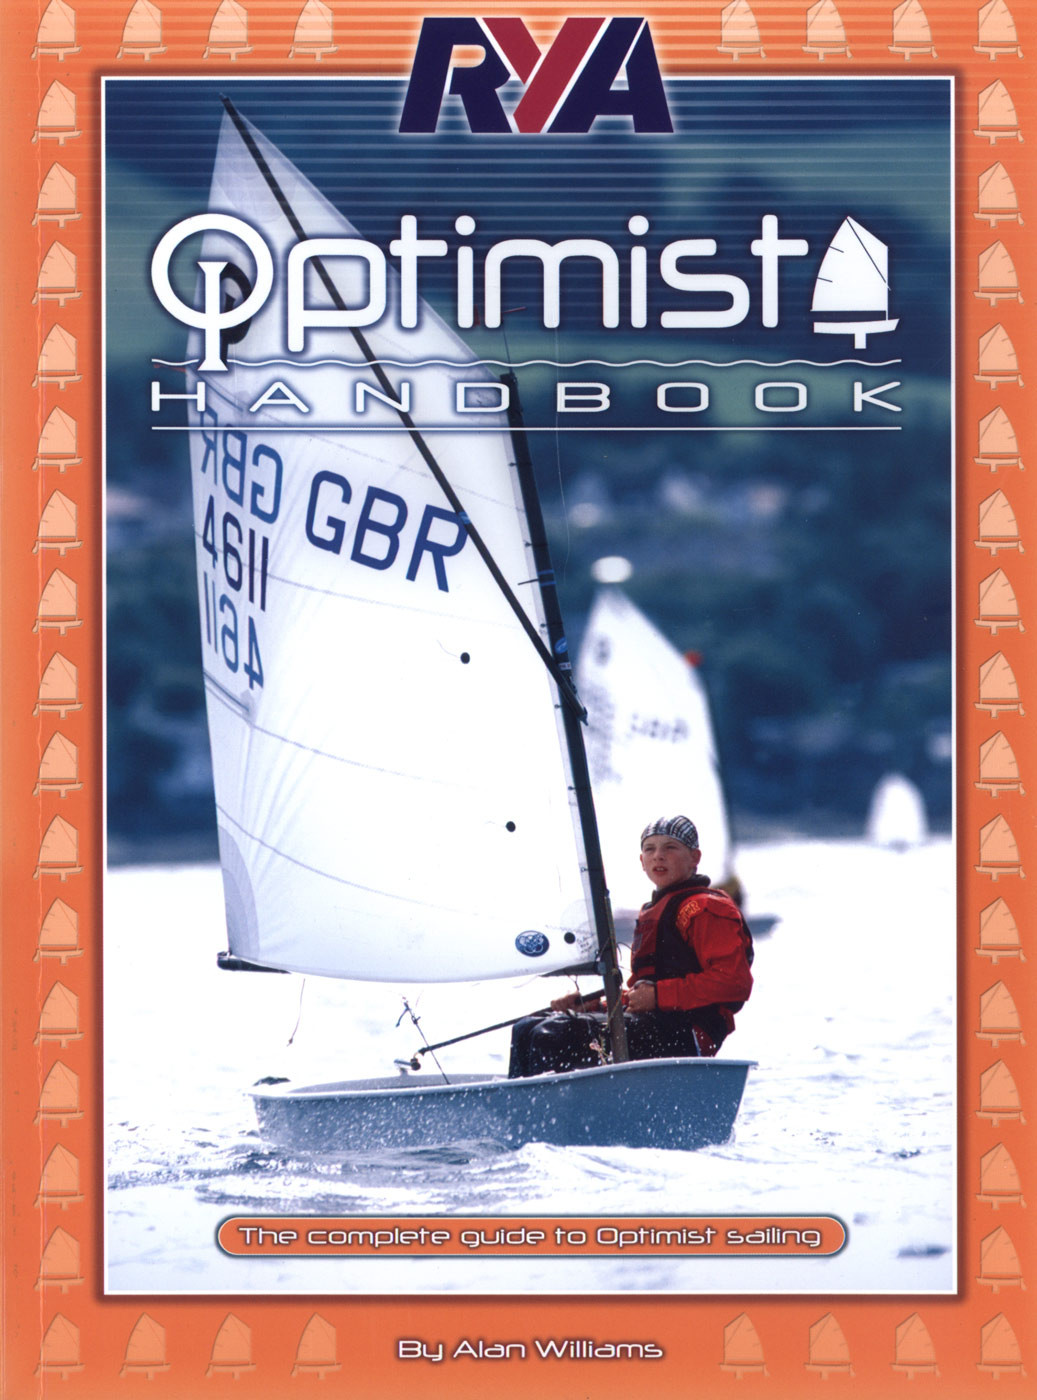 RYA Optimist Handbook